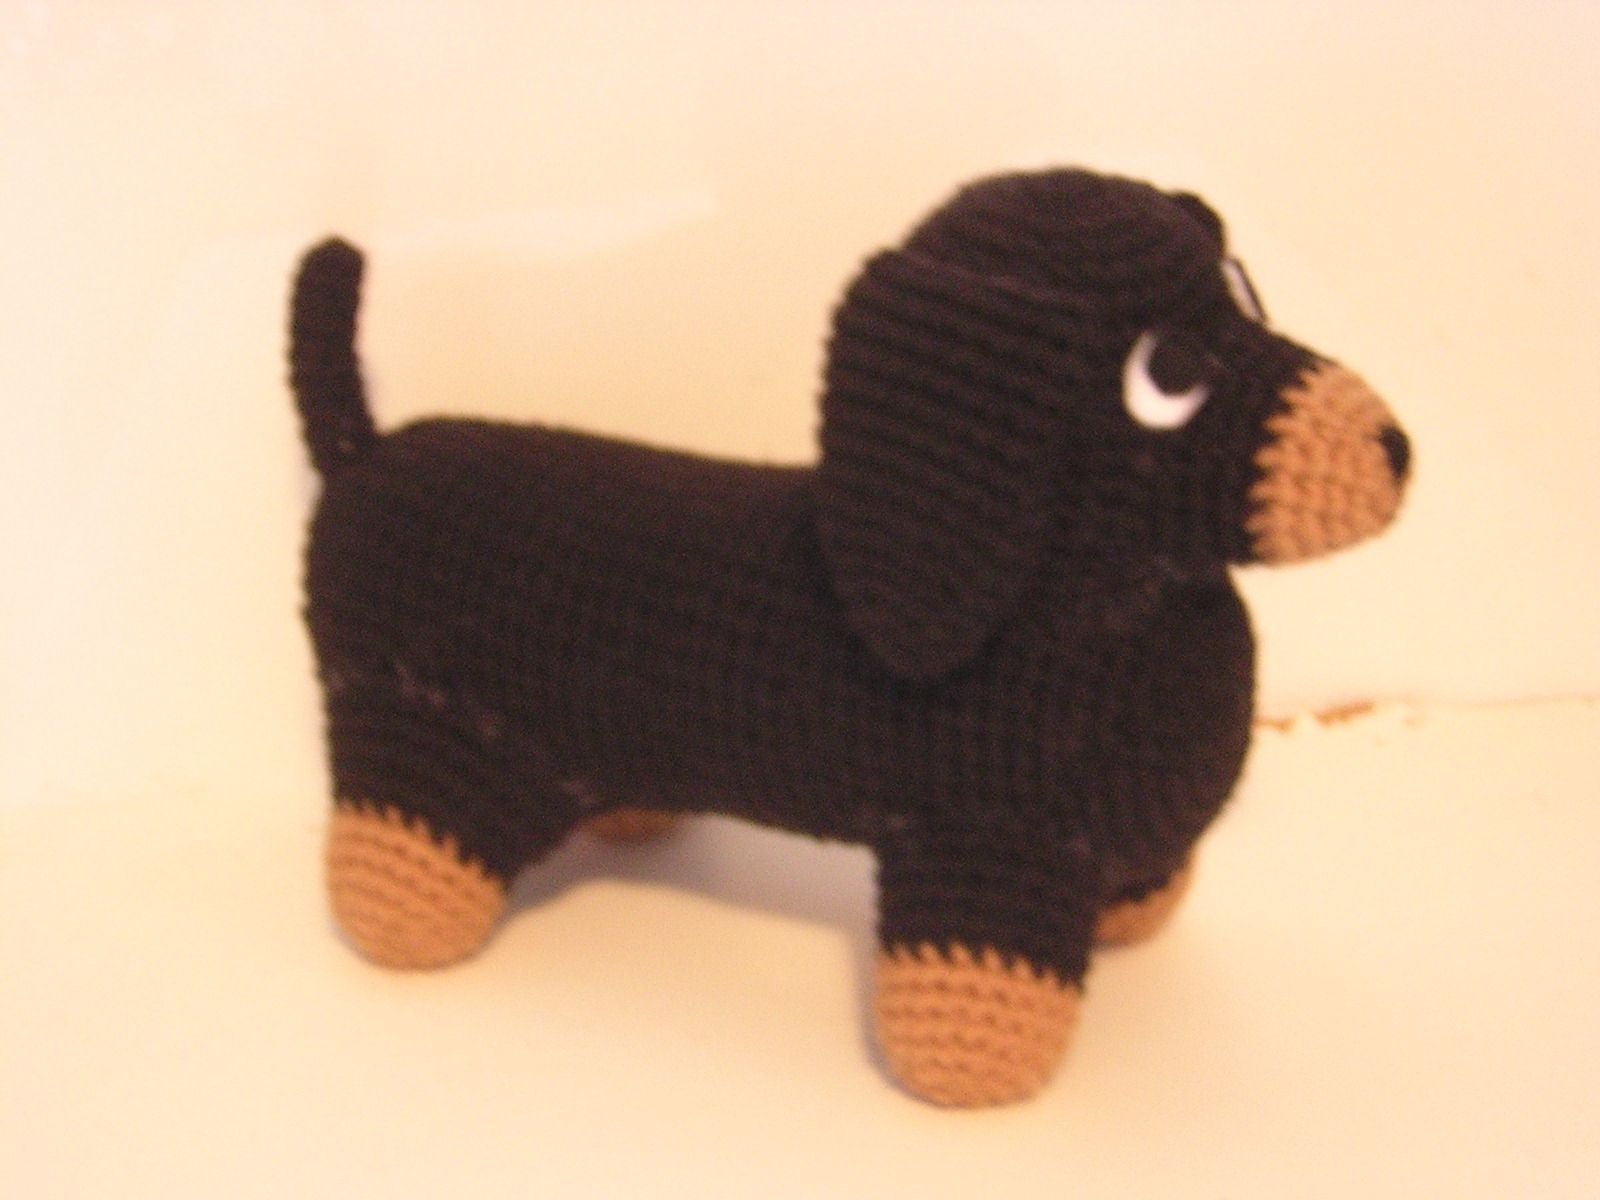 Gratis freedachshund amigurumi crochet pattern supplies one skein gratis freedachshund amigurumi crochet pattern supplies one skein red heart super saver in black bankloansurffo Gallery